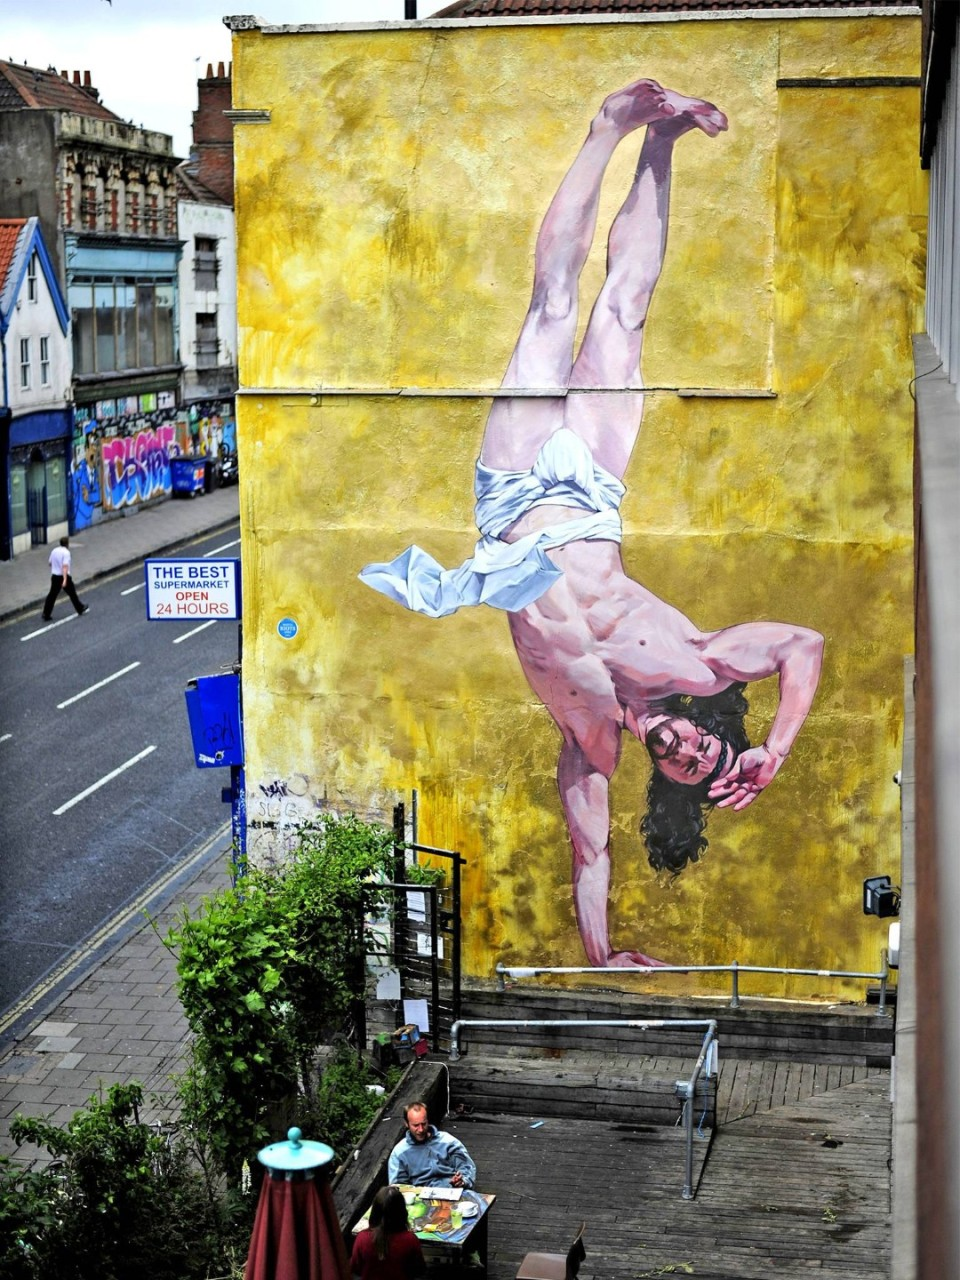 BreakdancingJesus